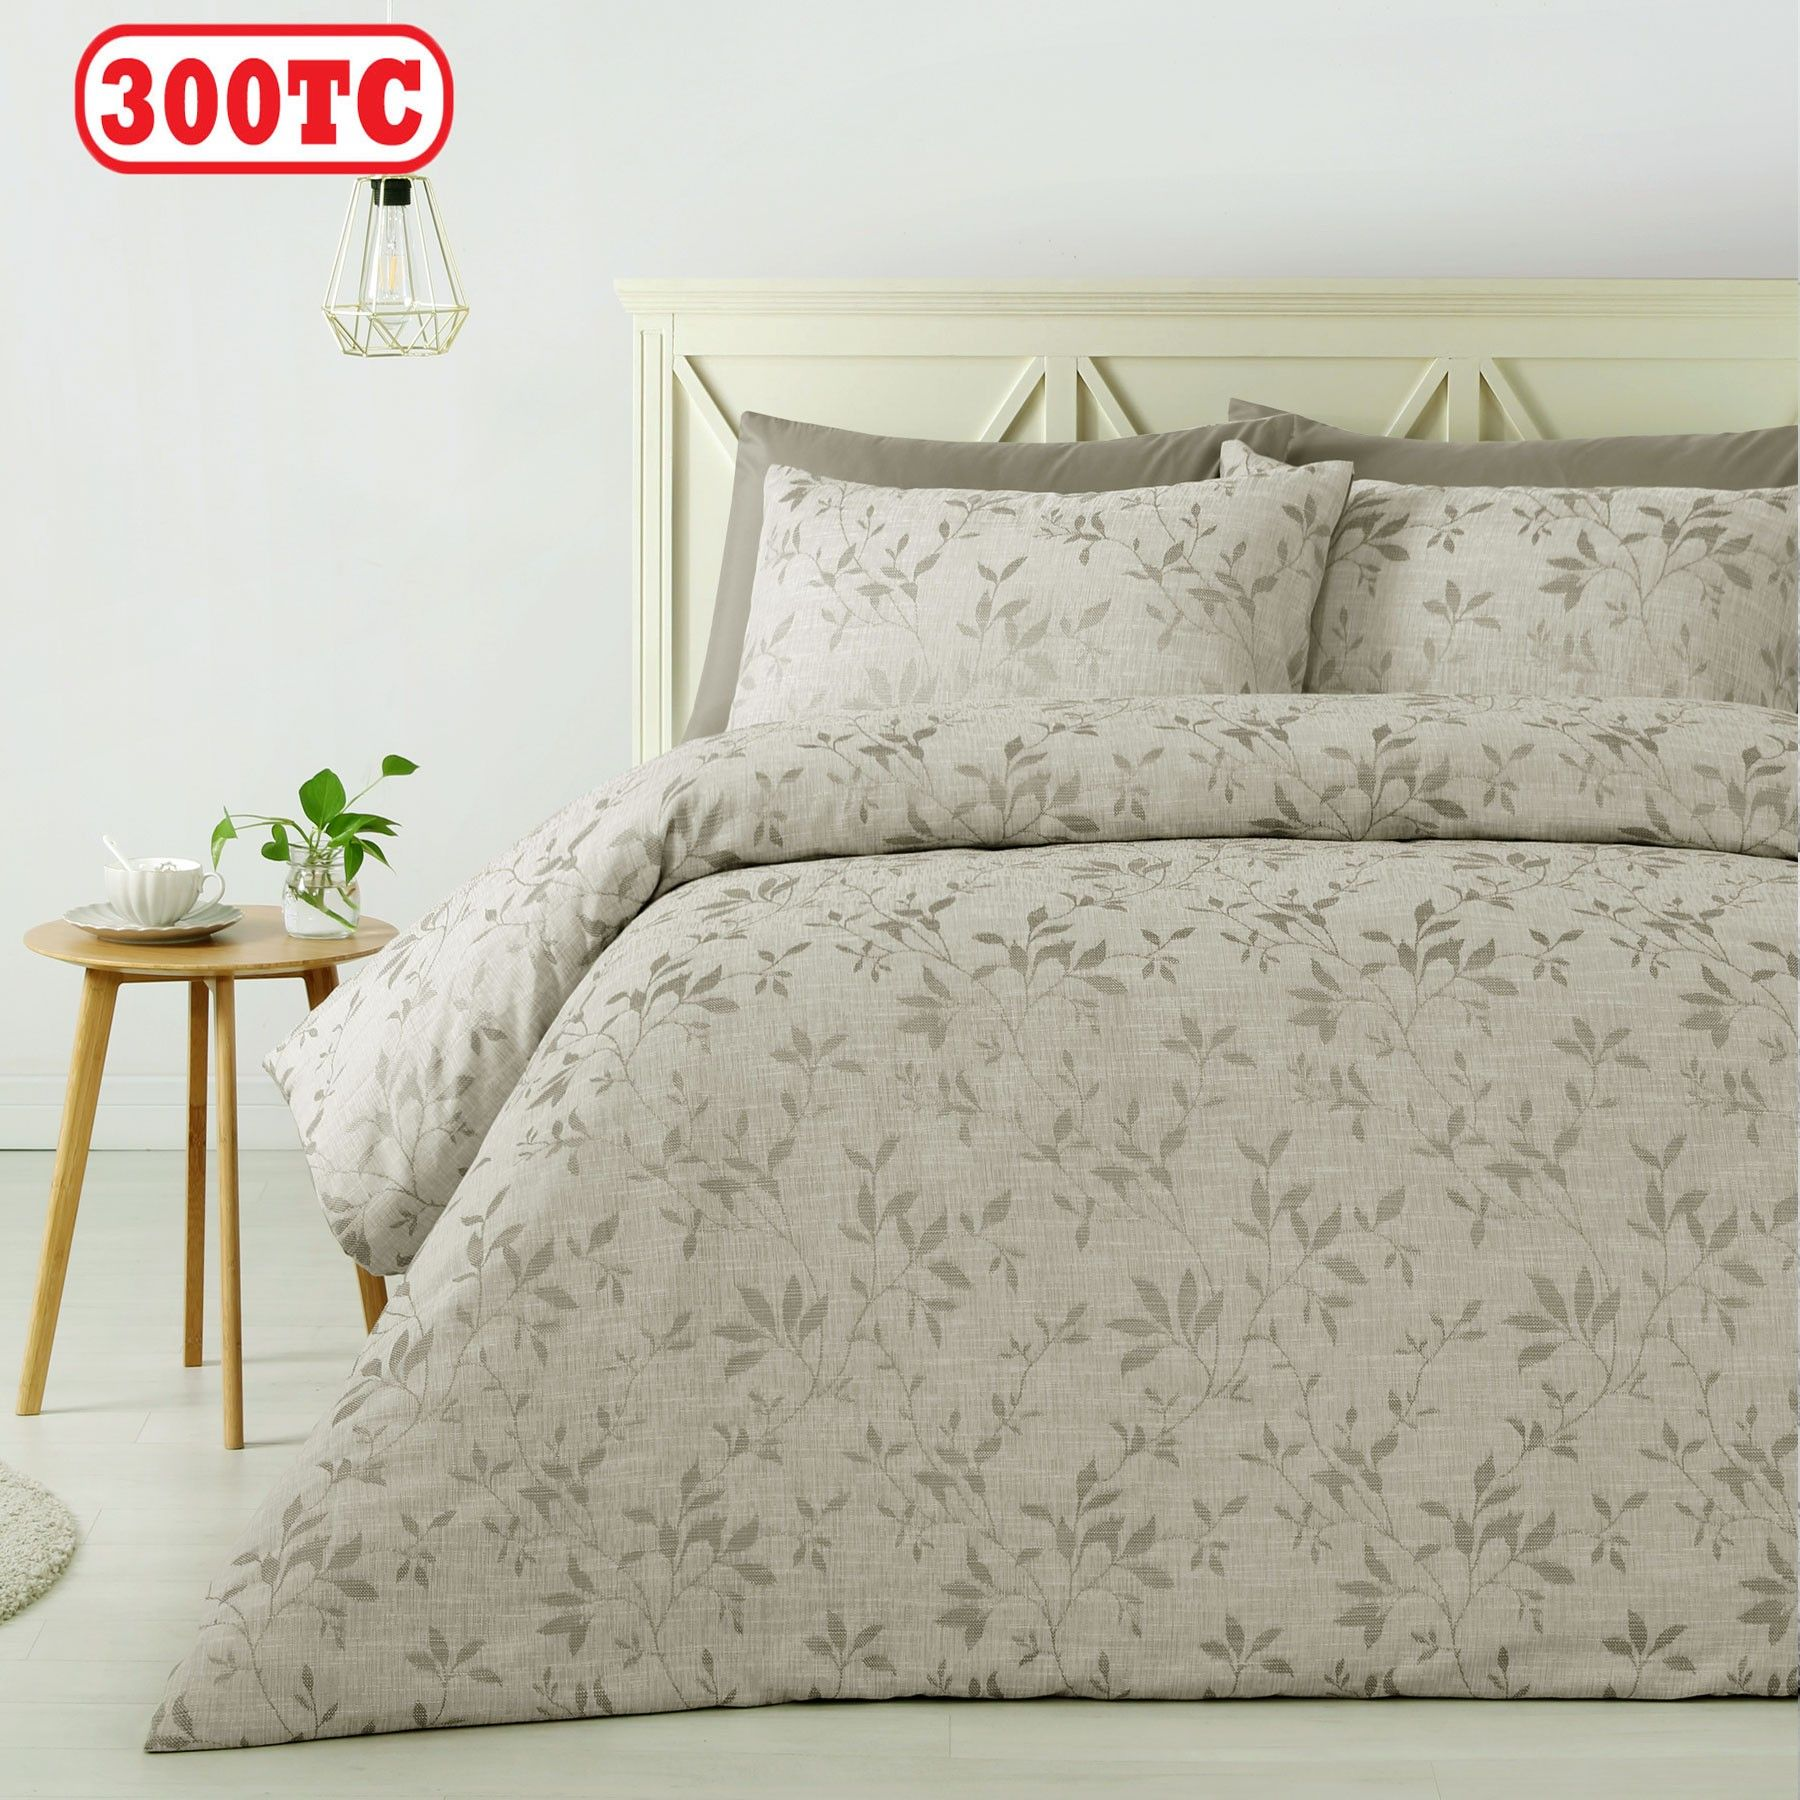 300TC Mae Jacquard Quilt Cover Set by Accessorize | Quilt Cover ... : jacquard quilt - Adamdwight.com